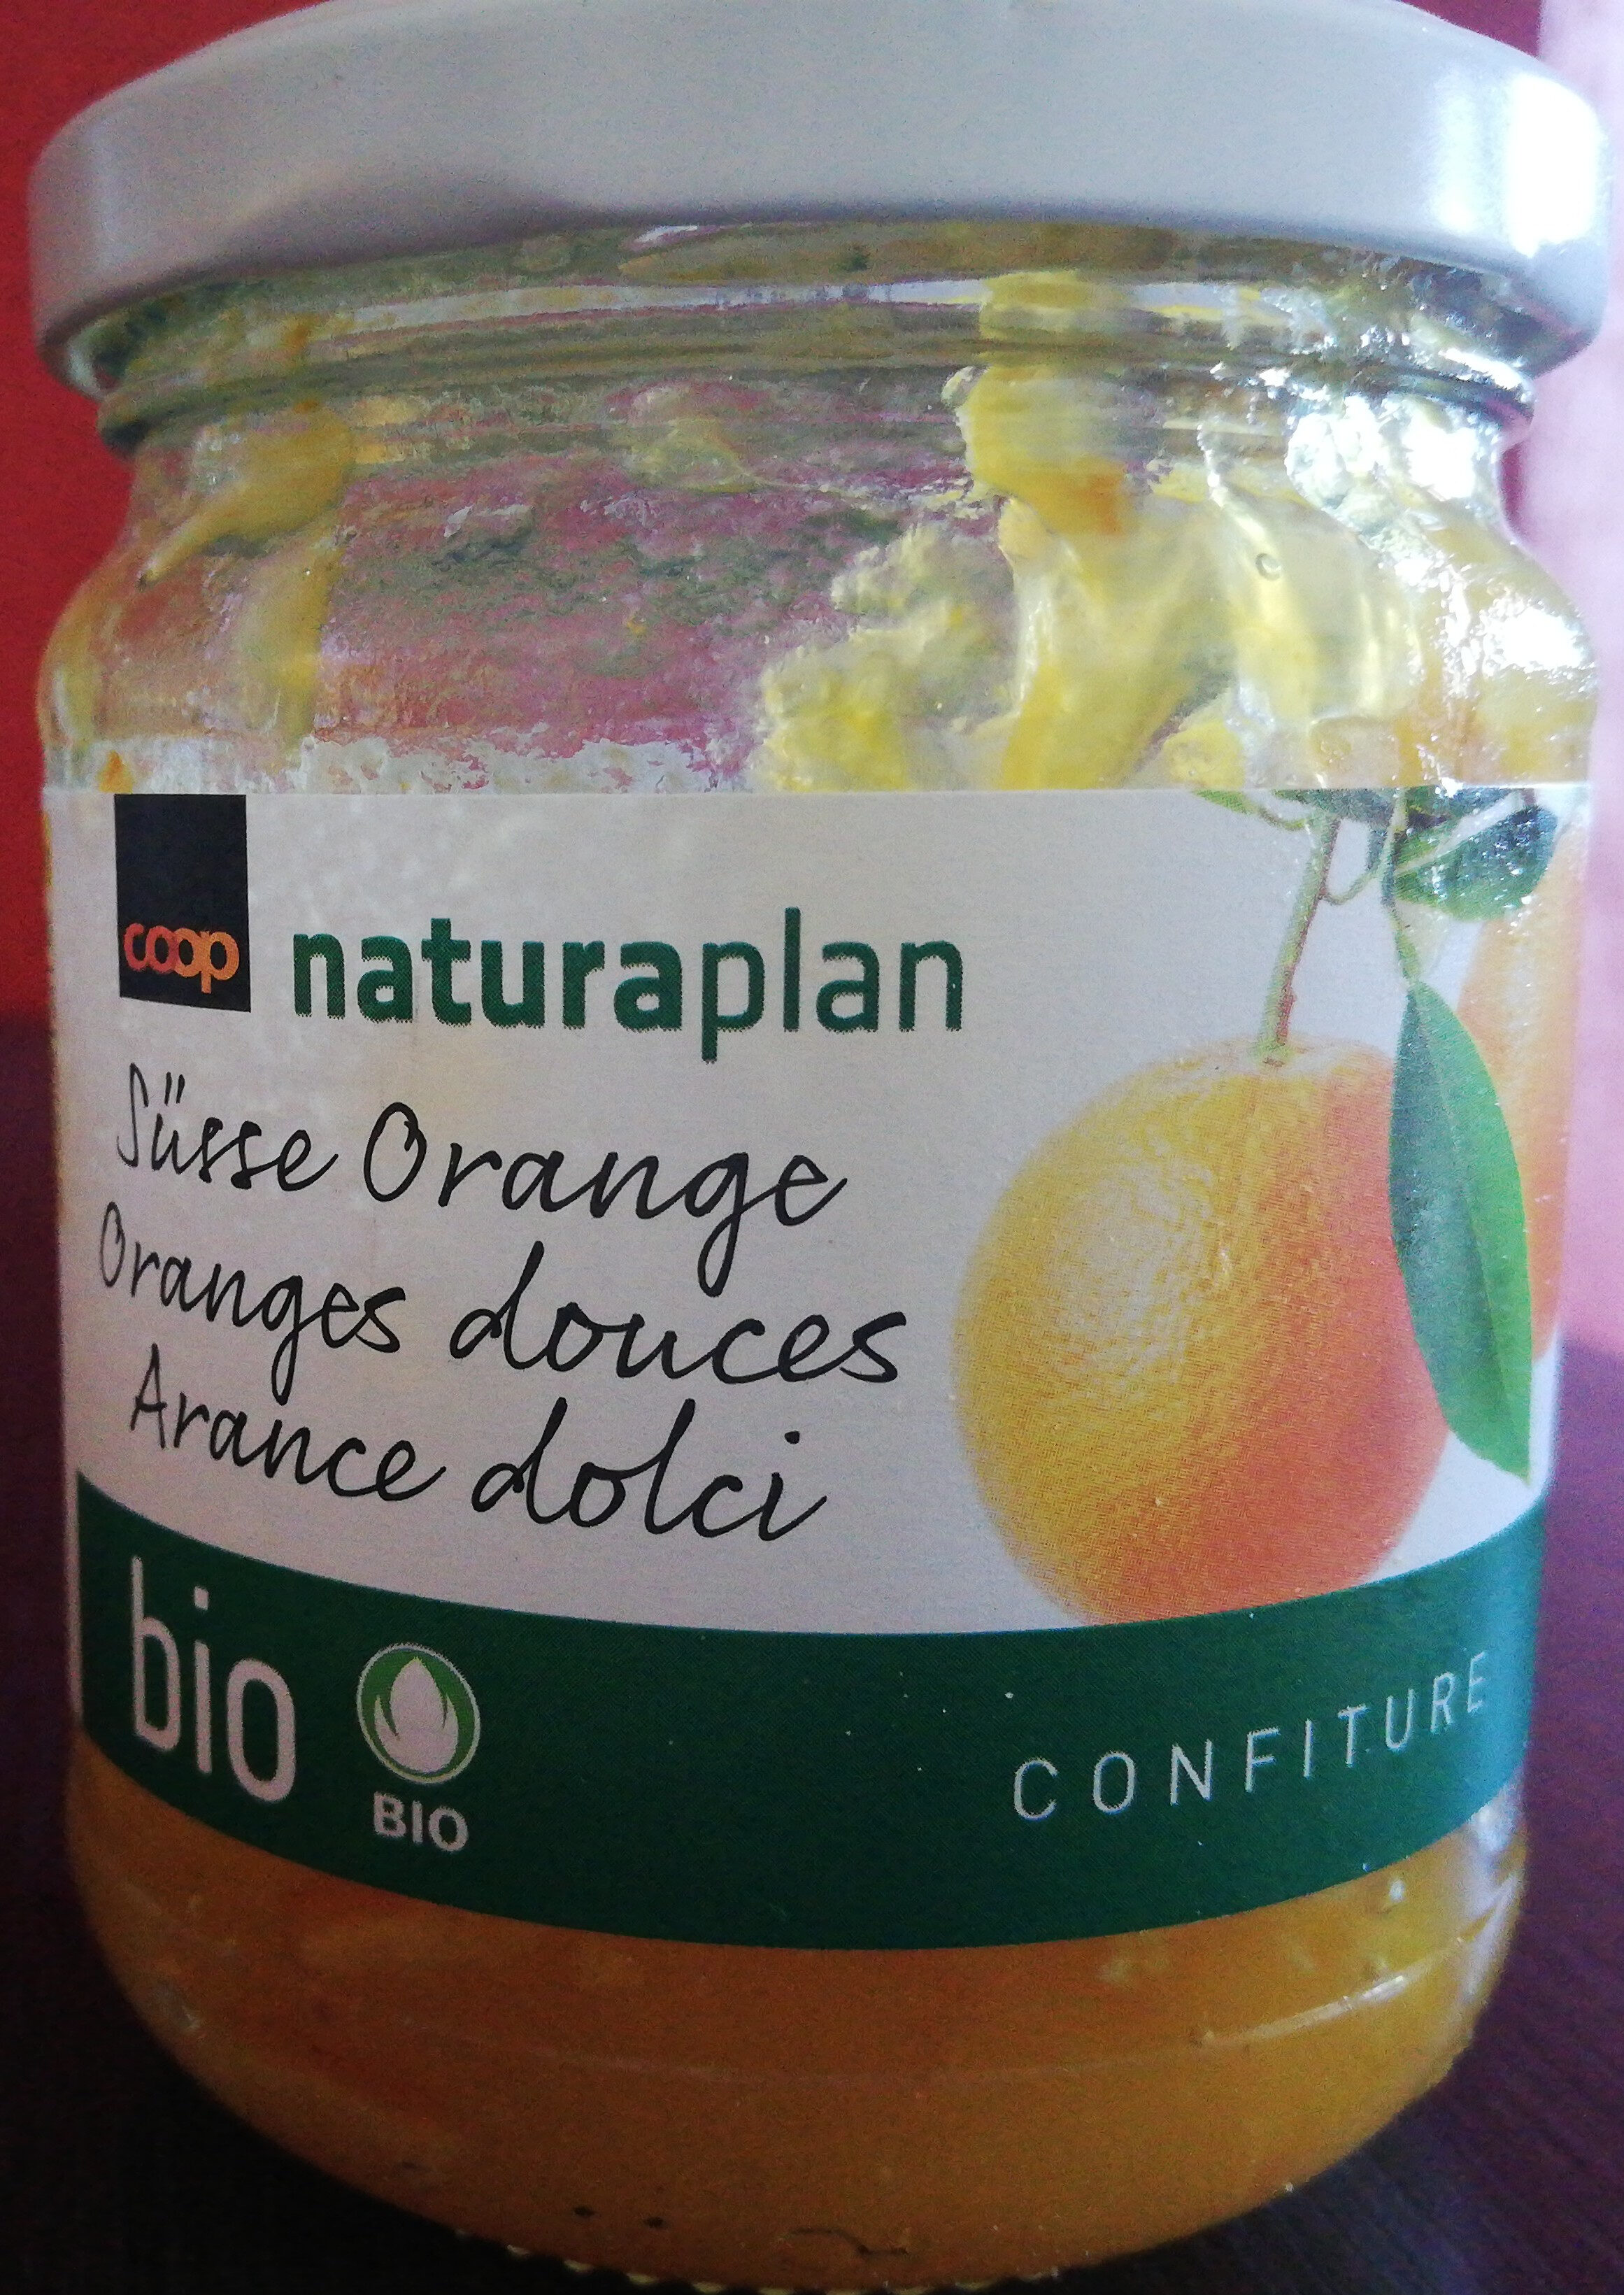 Confiture Oranges Douces Bio - Product